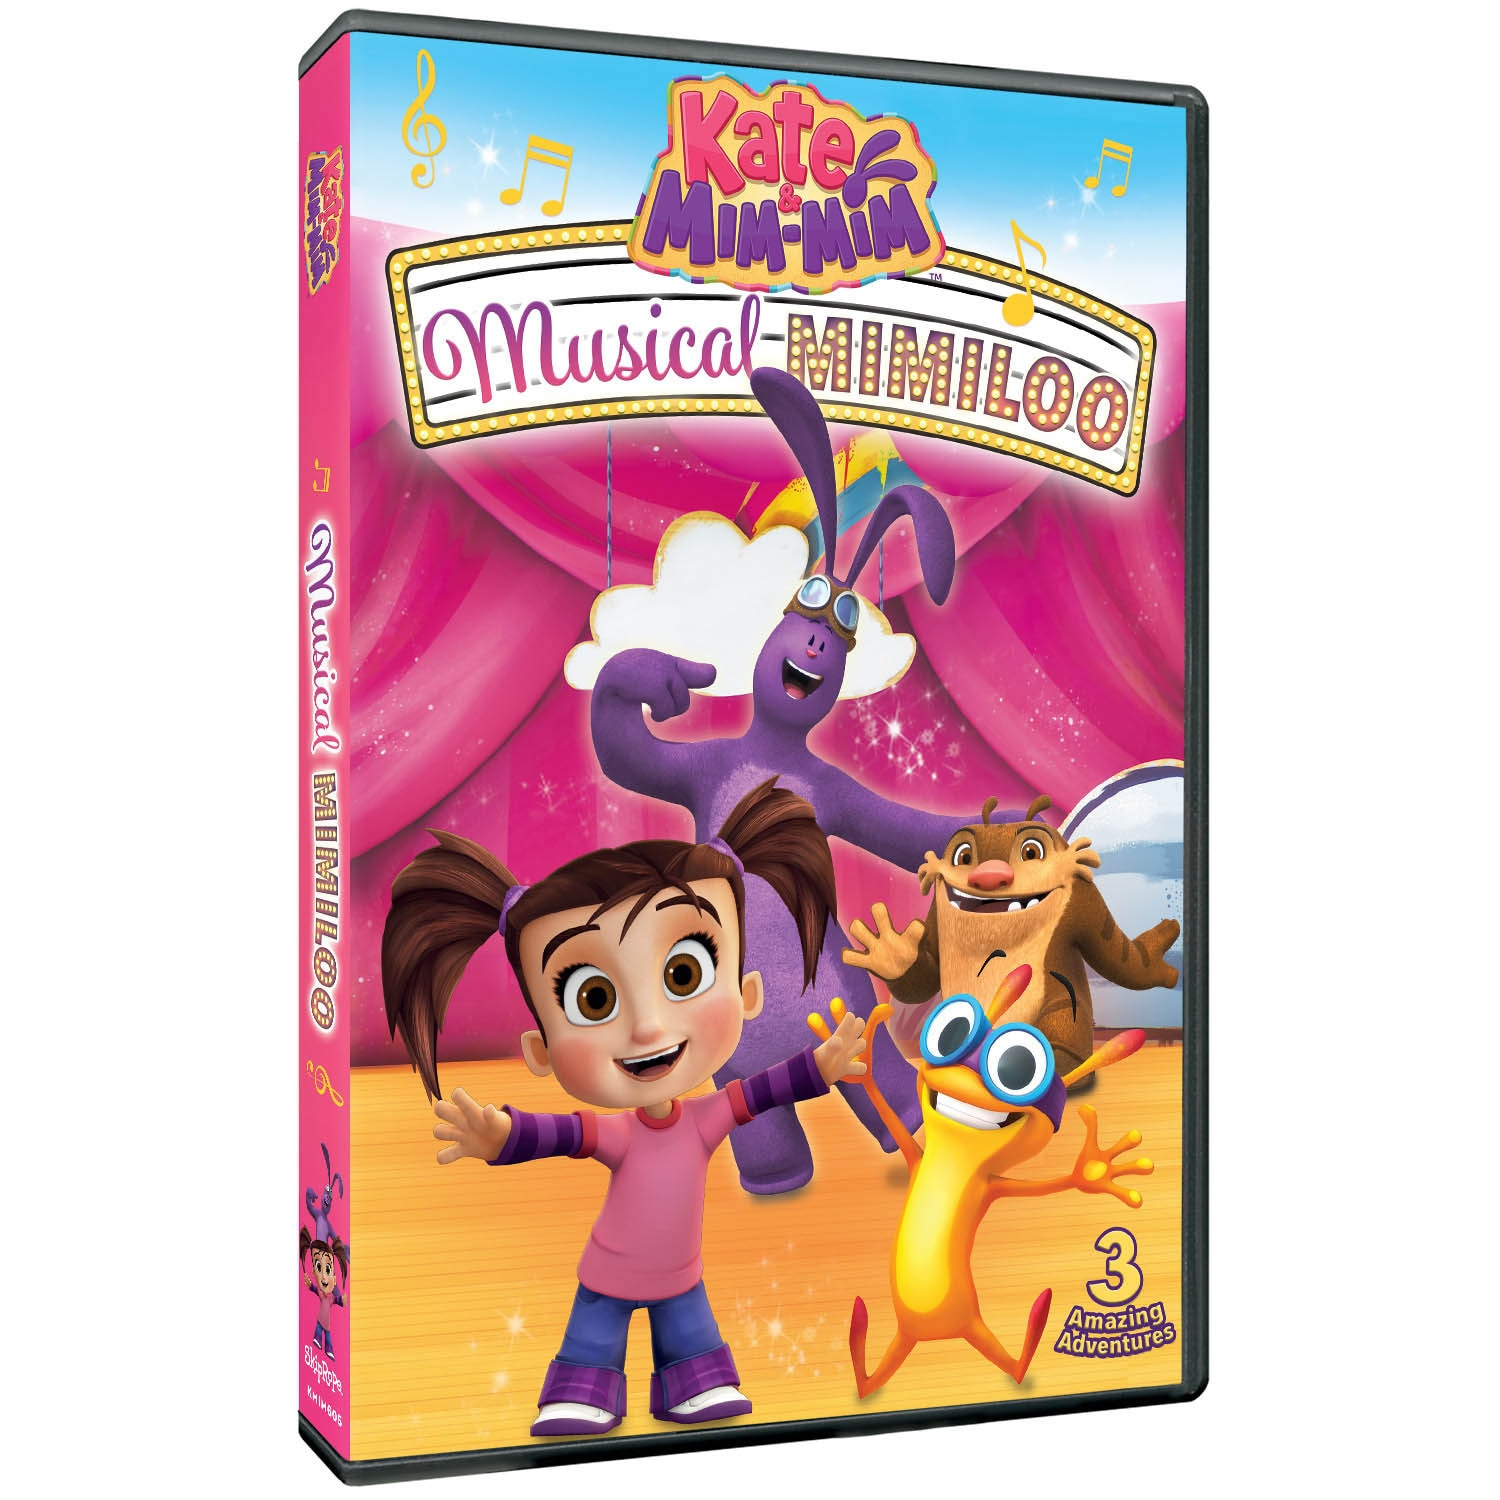 Kate Mim Mim Musical Mimiloo Dvd Shop Pbs Org